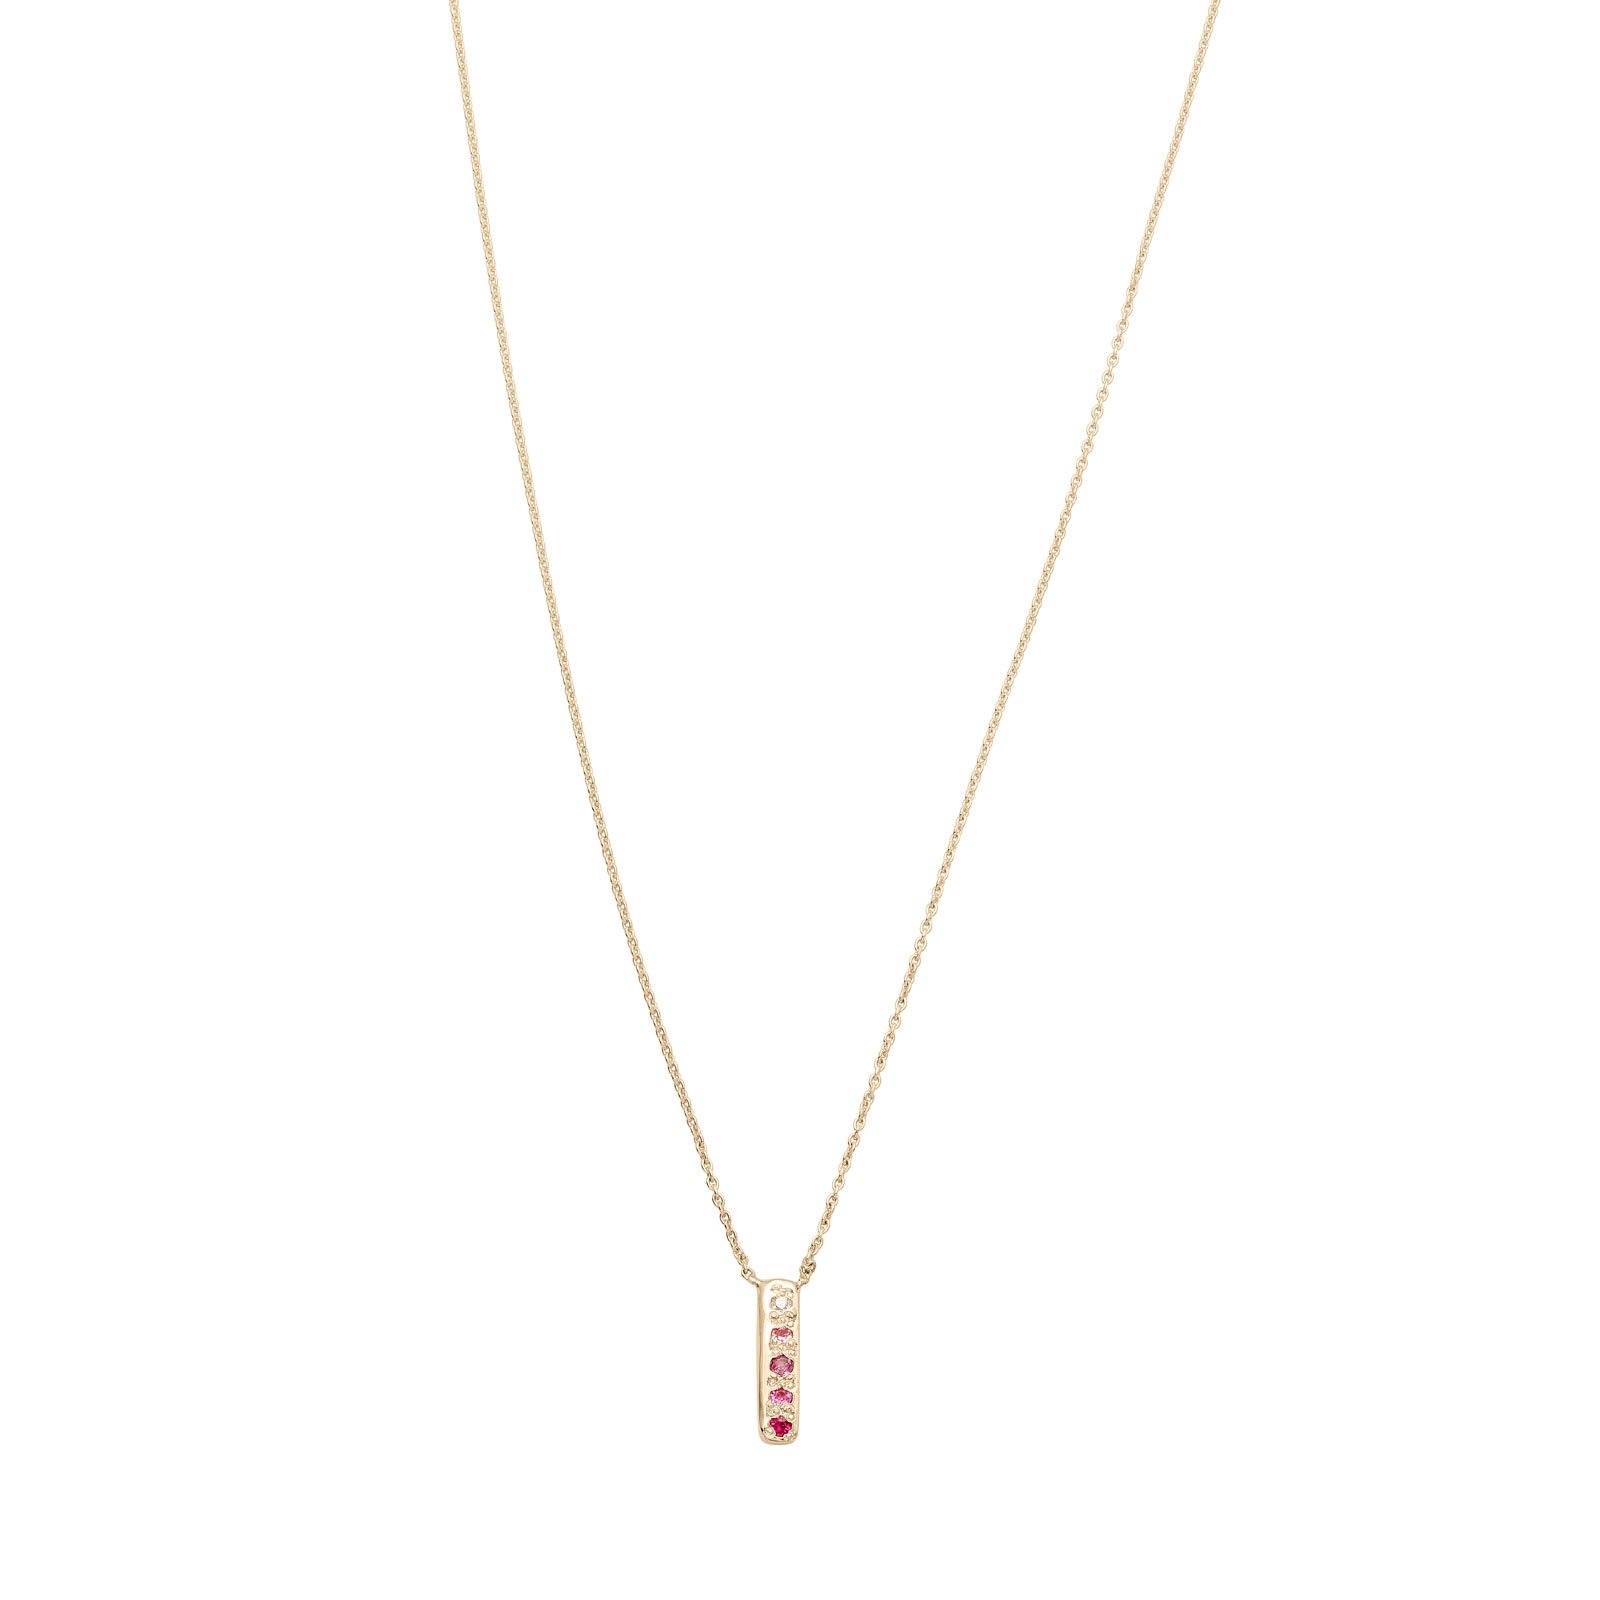 Skinny Bar Necklace - Personalized